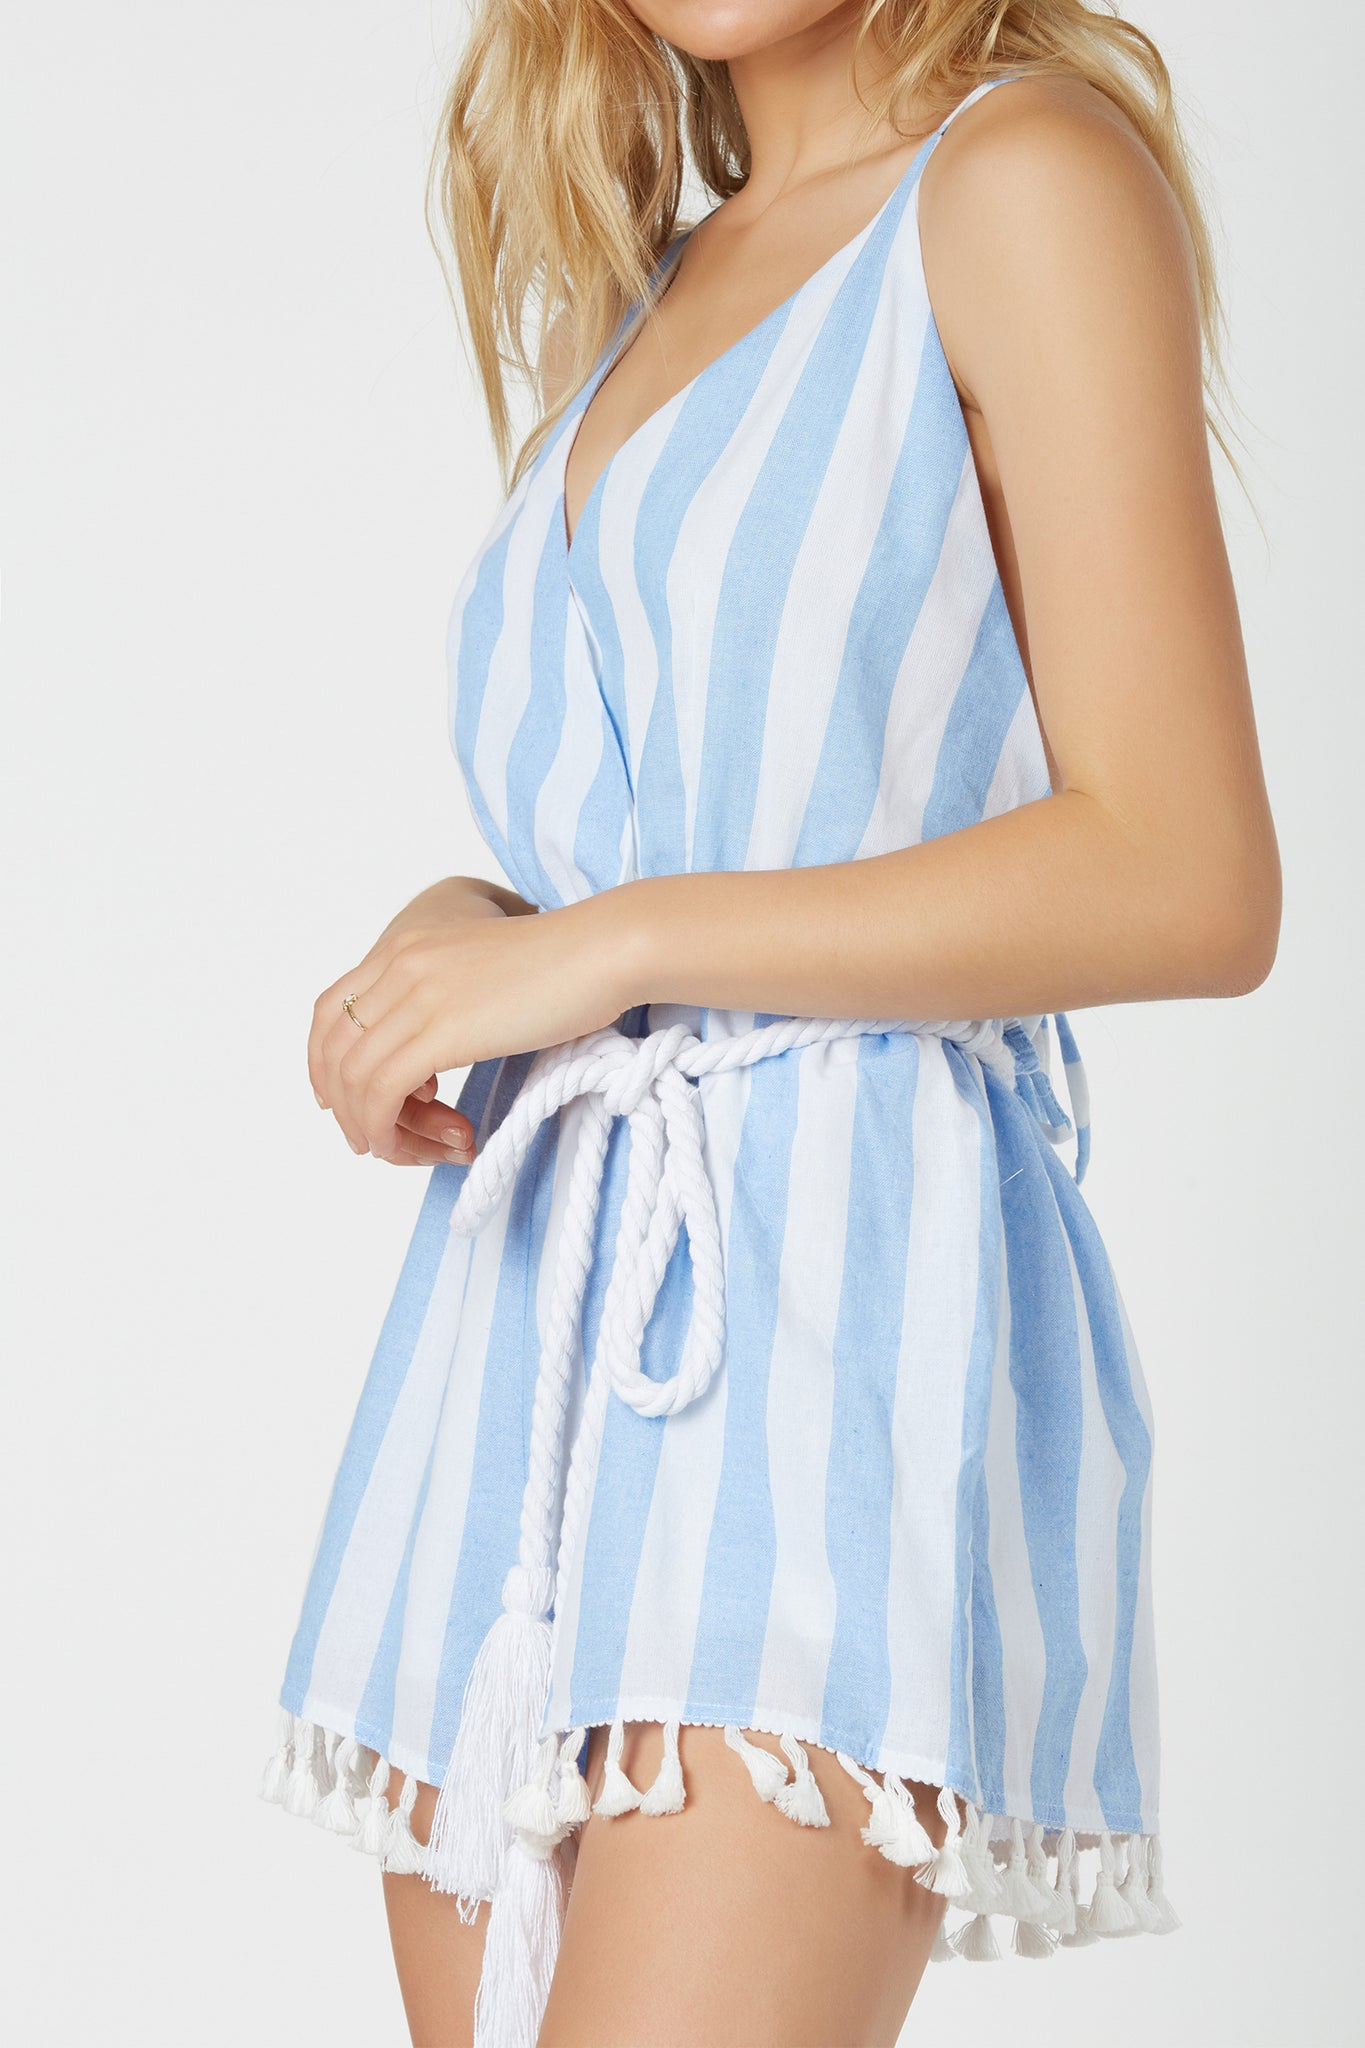 Playful spaghetti strap romper with overlap V-neckline. Stripe patterns throughout with fun tassels at hem and roped waist tie for added detail.